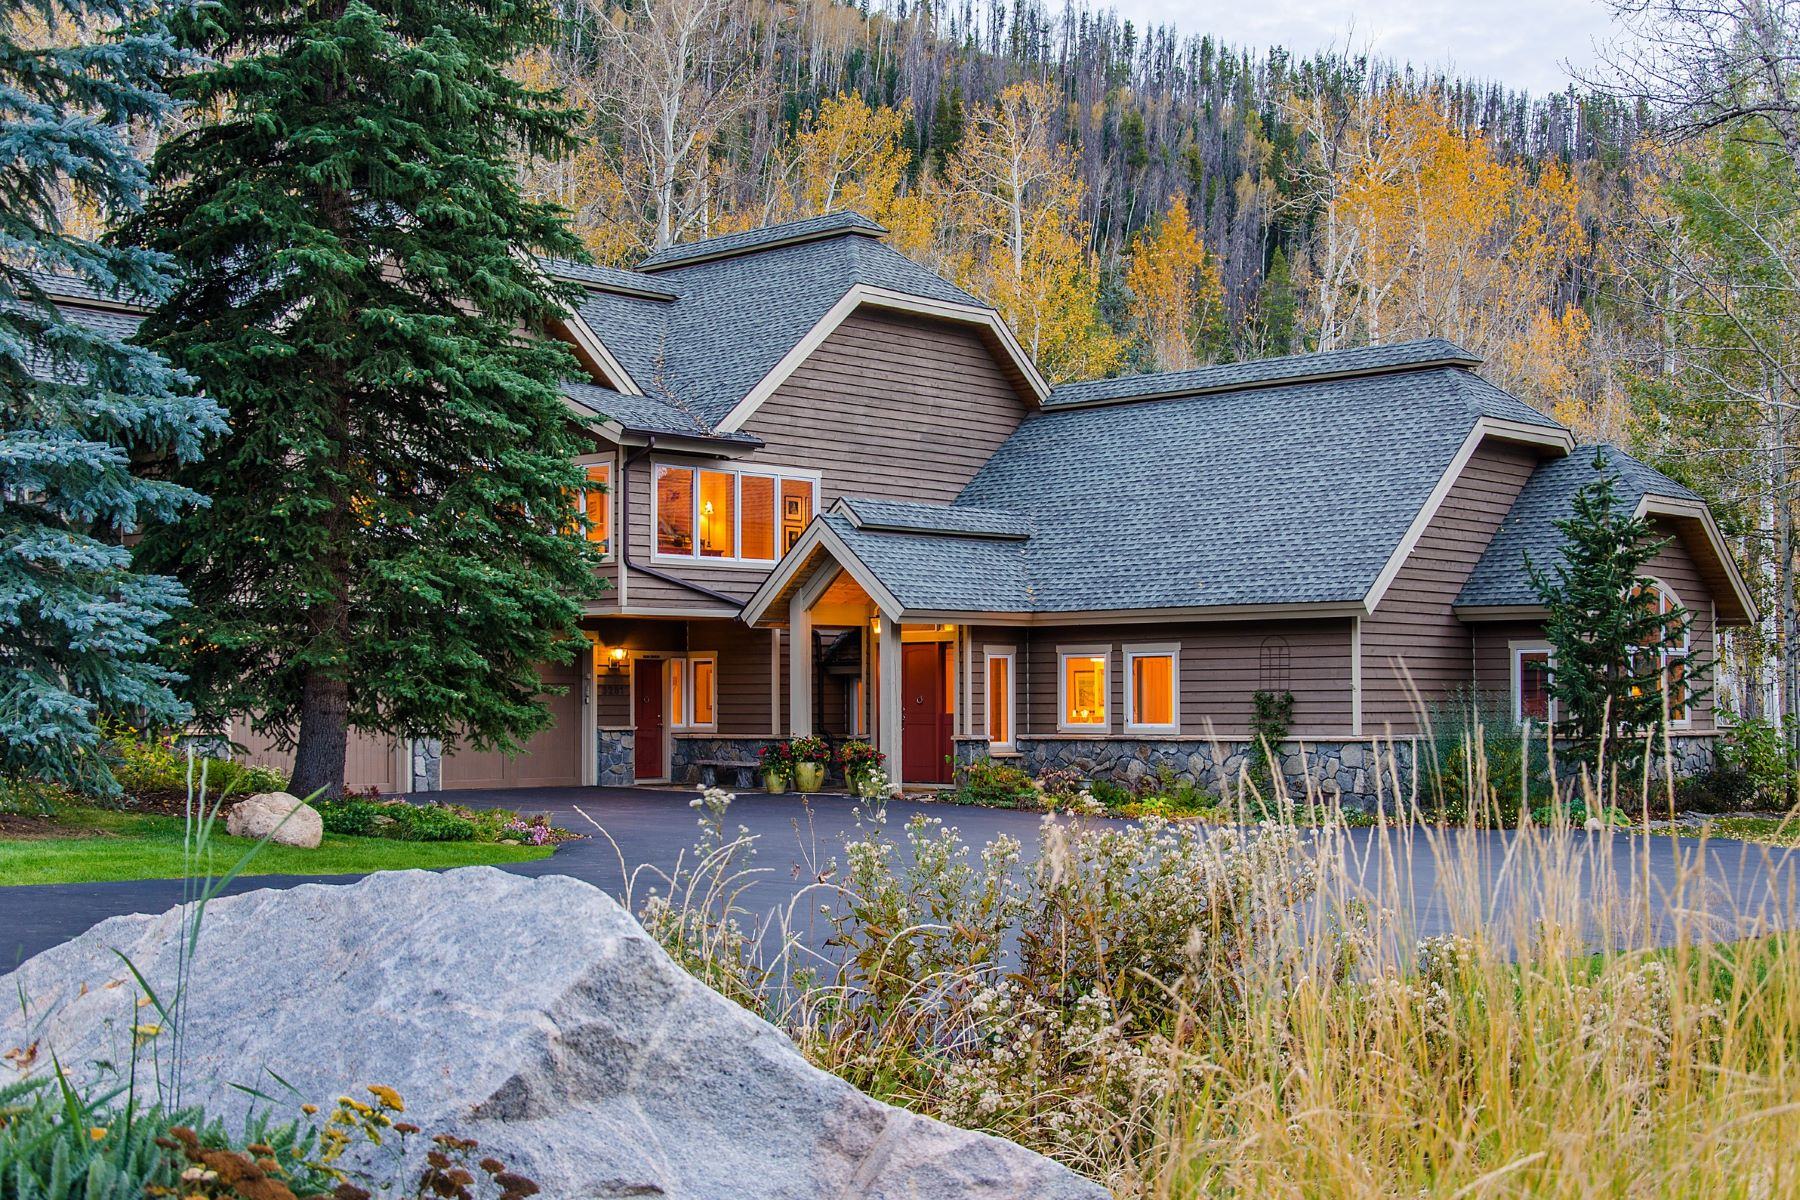 Single Family Home for Active at Private Sanctuary Retreat 3281 Aspen Wood Ln Steamboat, Colorado 80487 United States